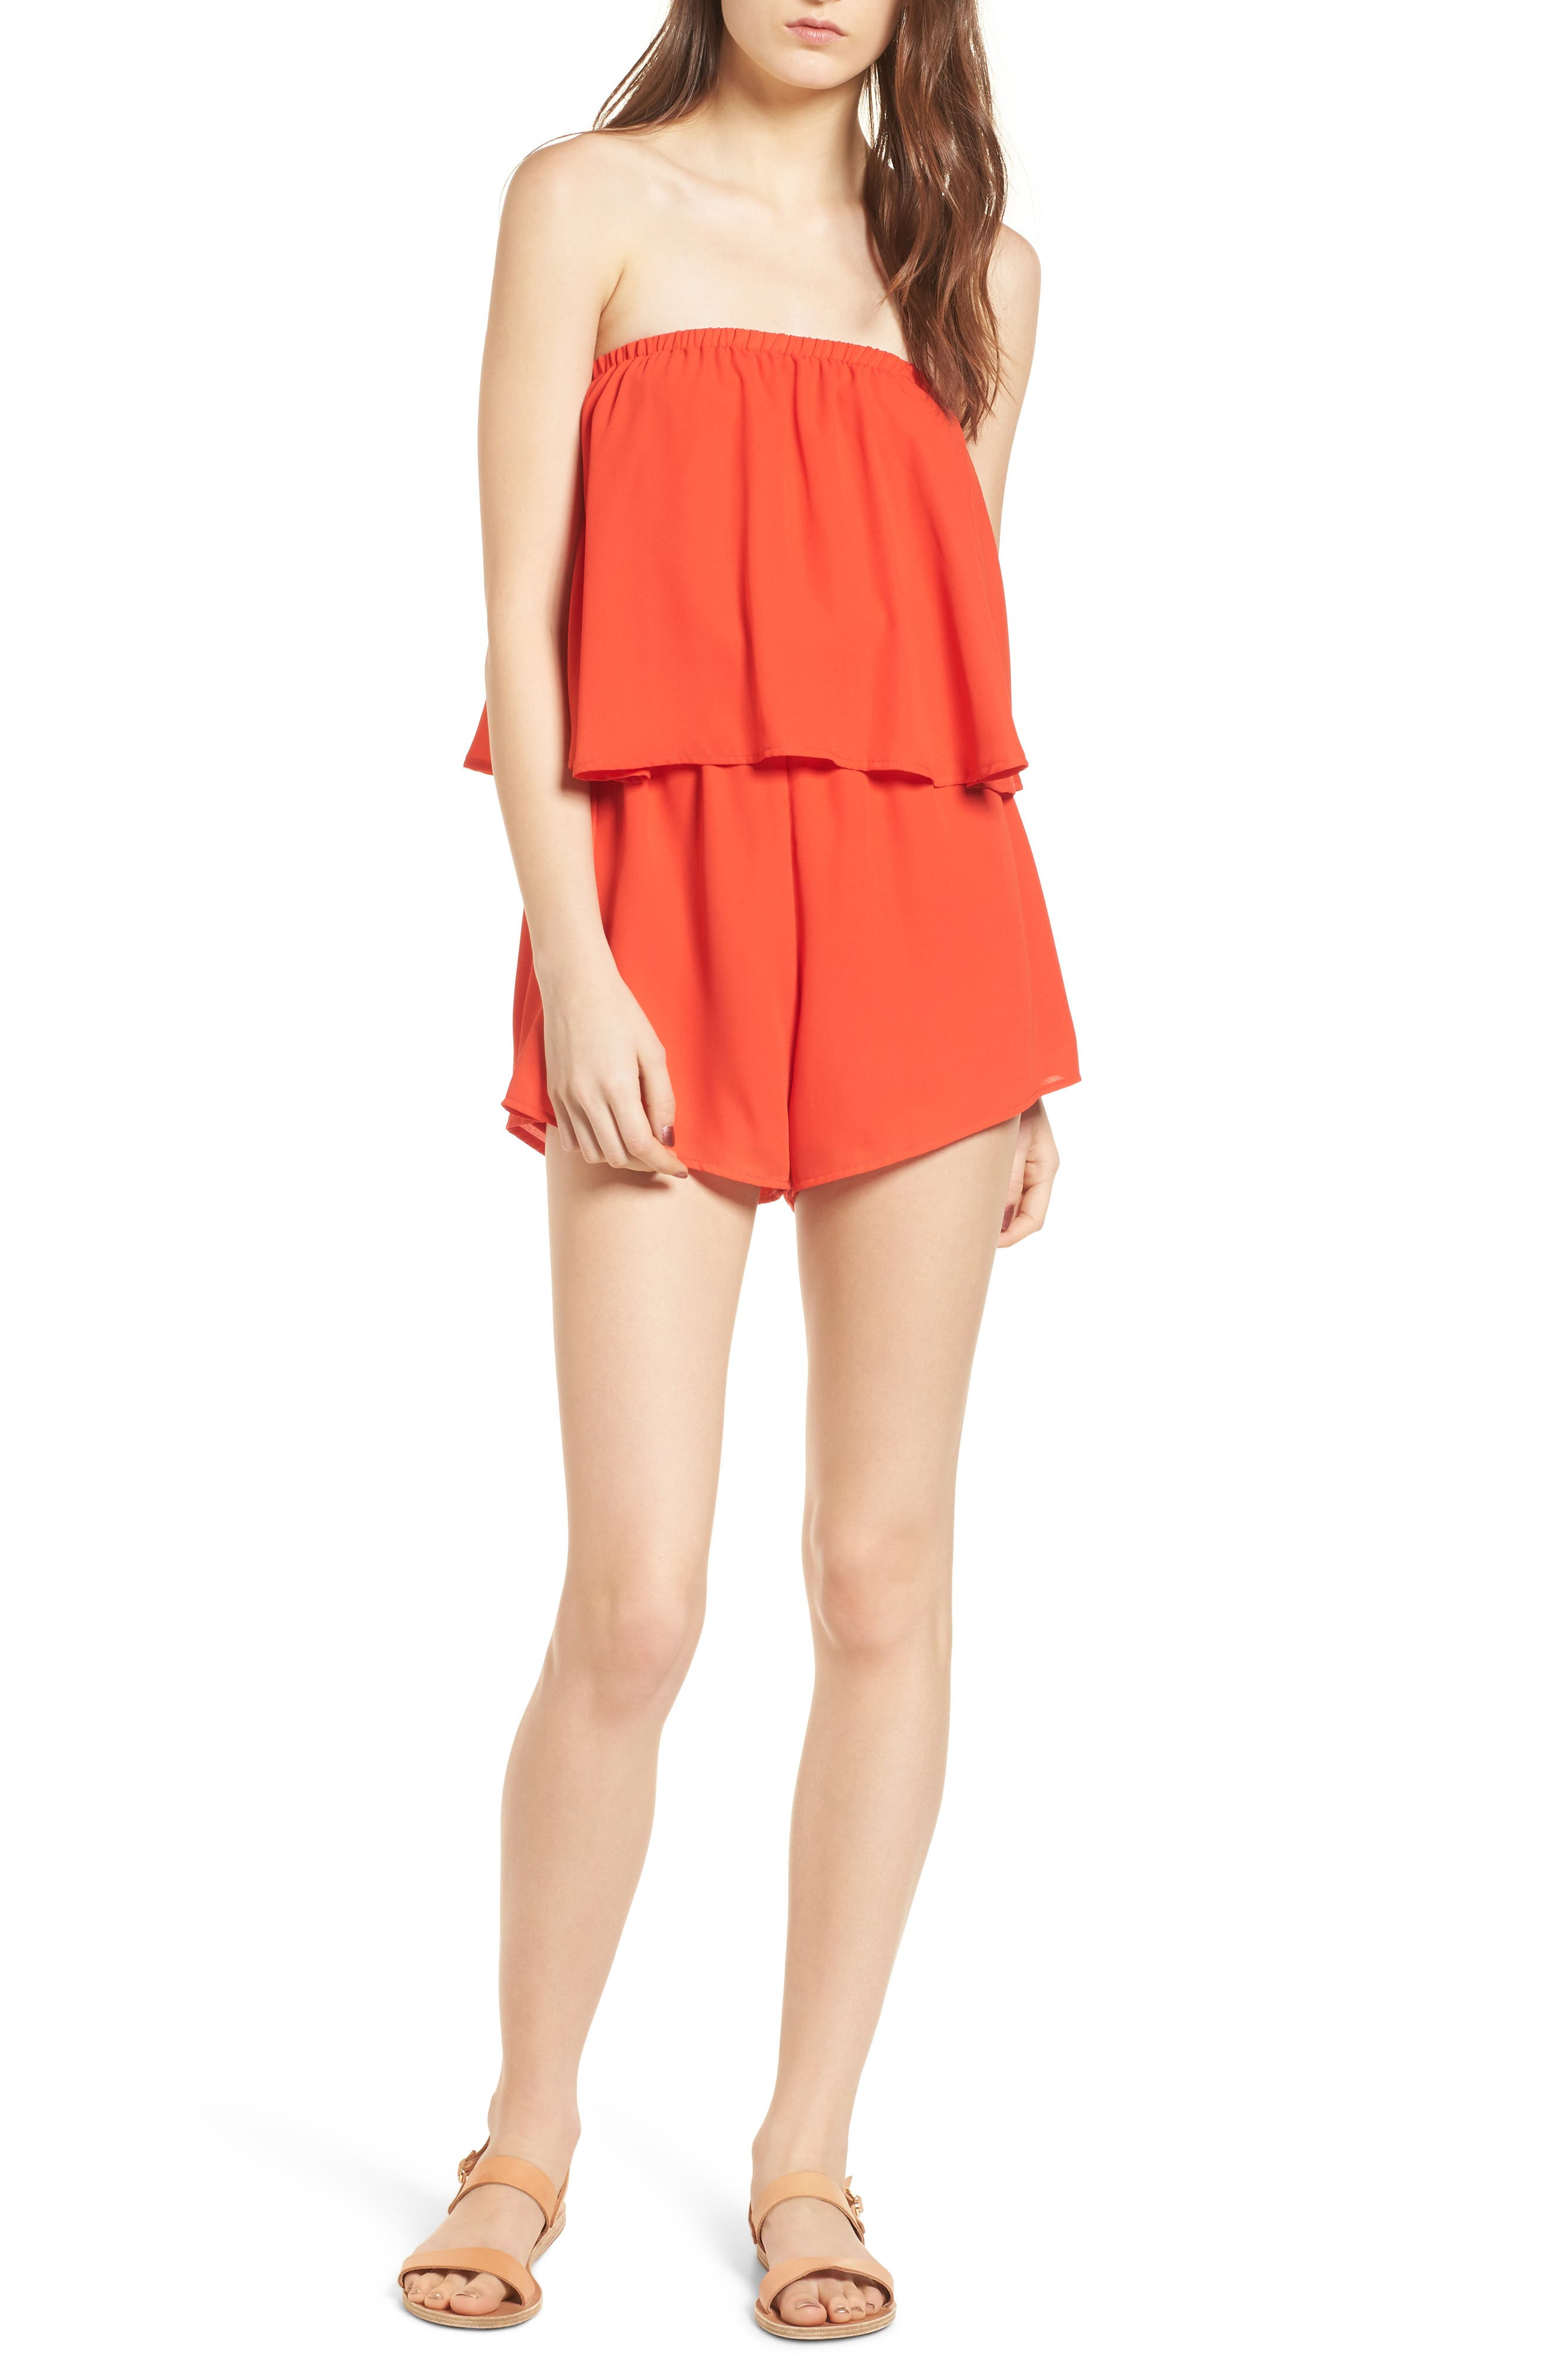 Thelma Strapless Romper,                             Main thumbnail 1, color,                             600